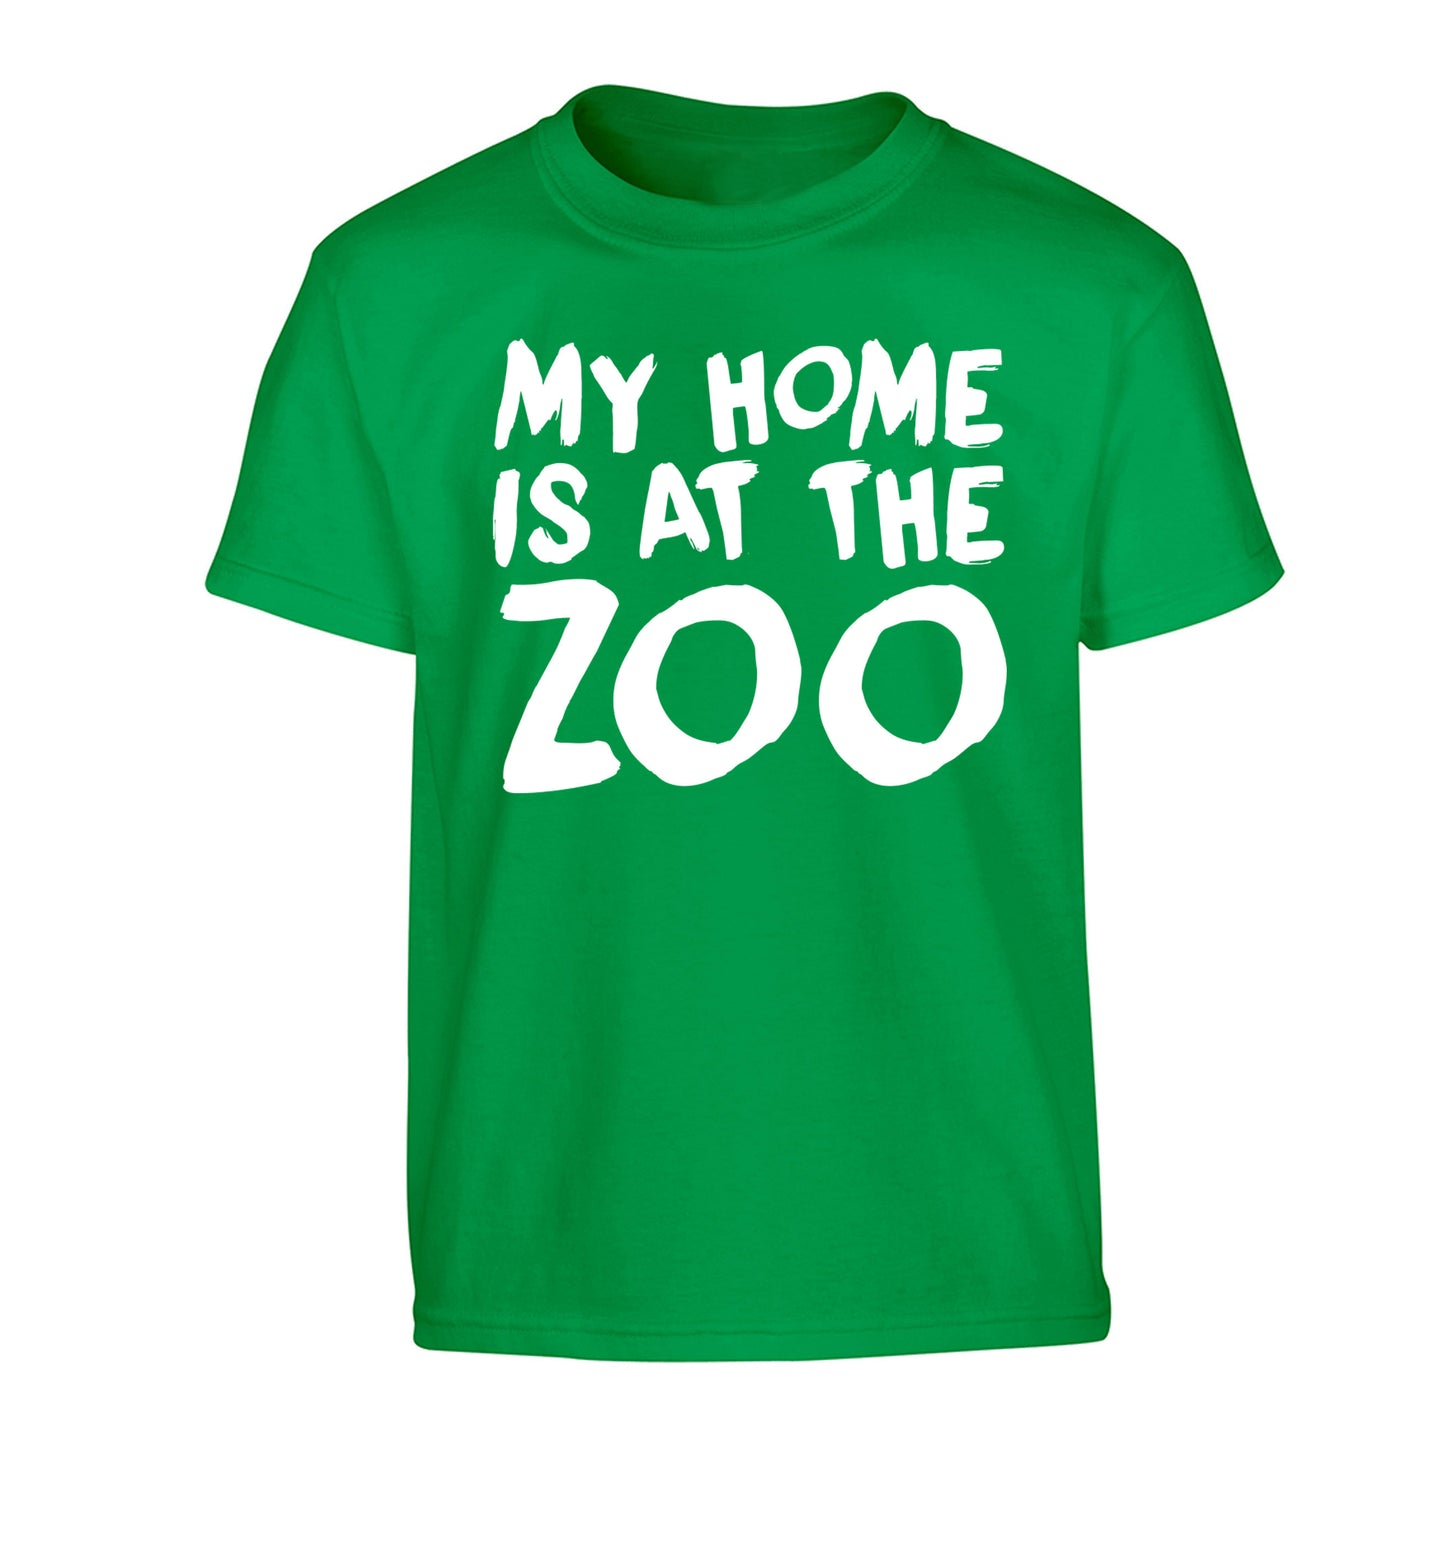 My home is at the zoo Children's green Tshirt 12-14 Years